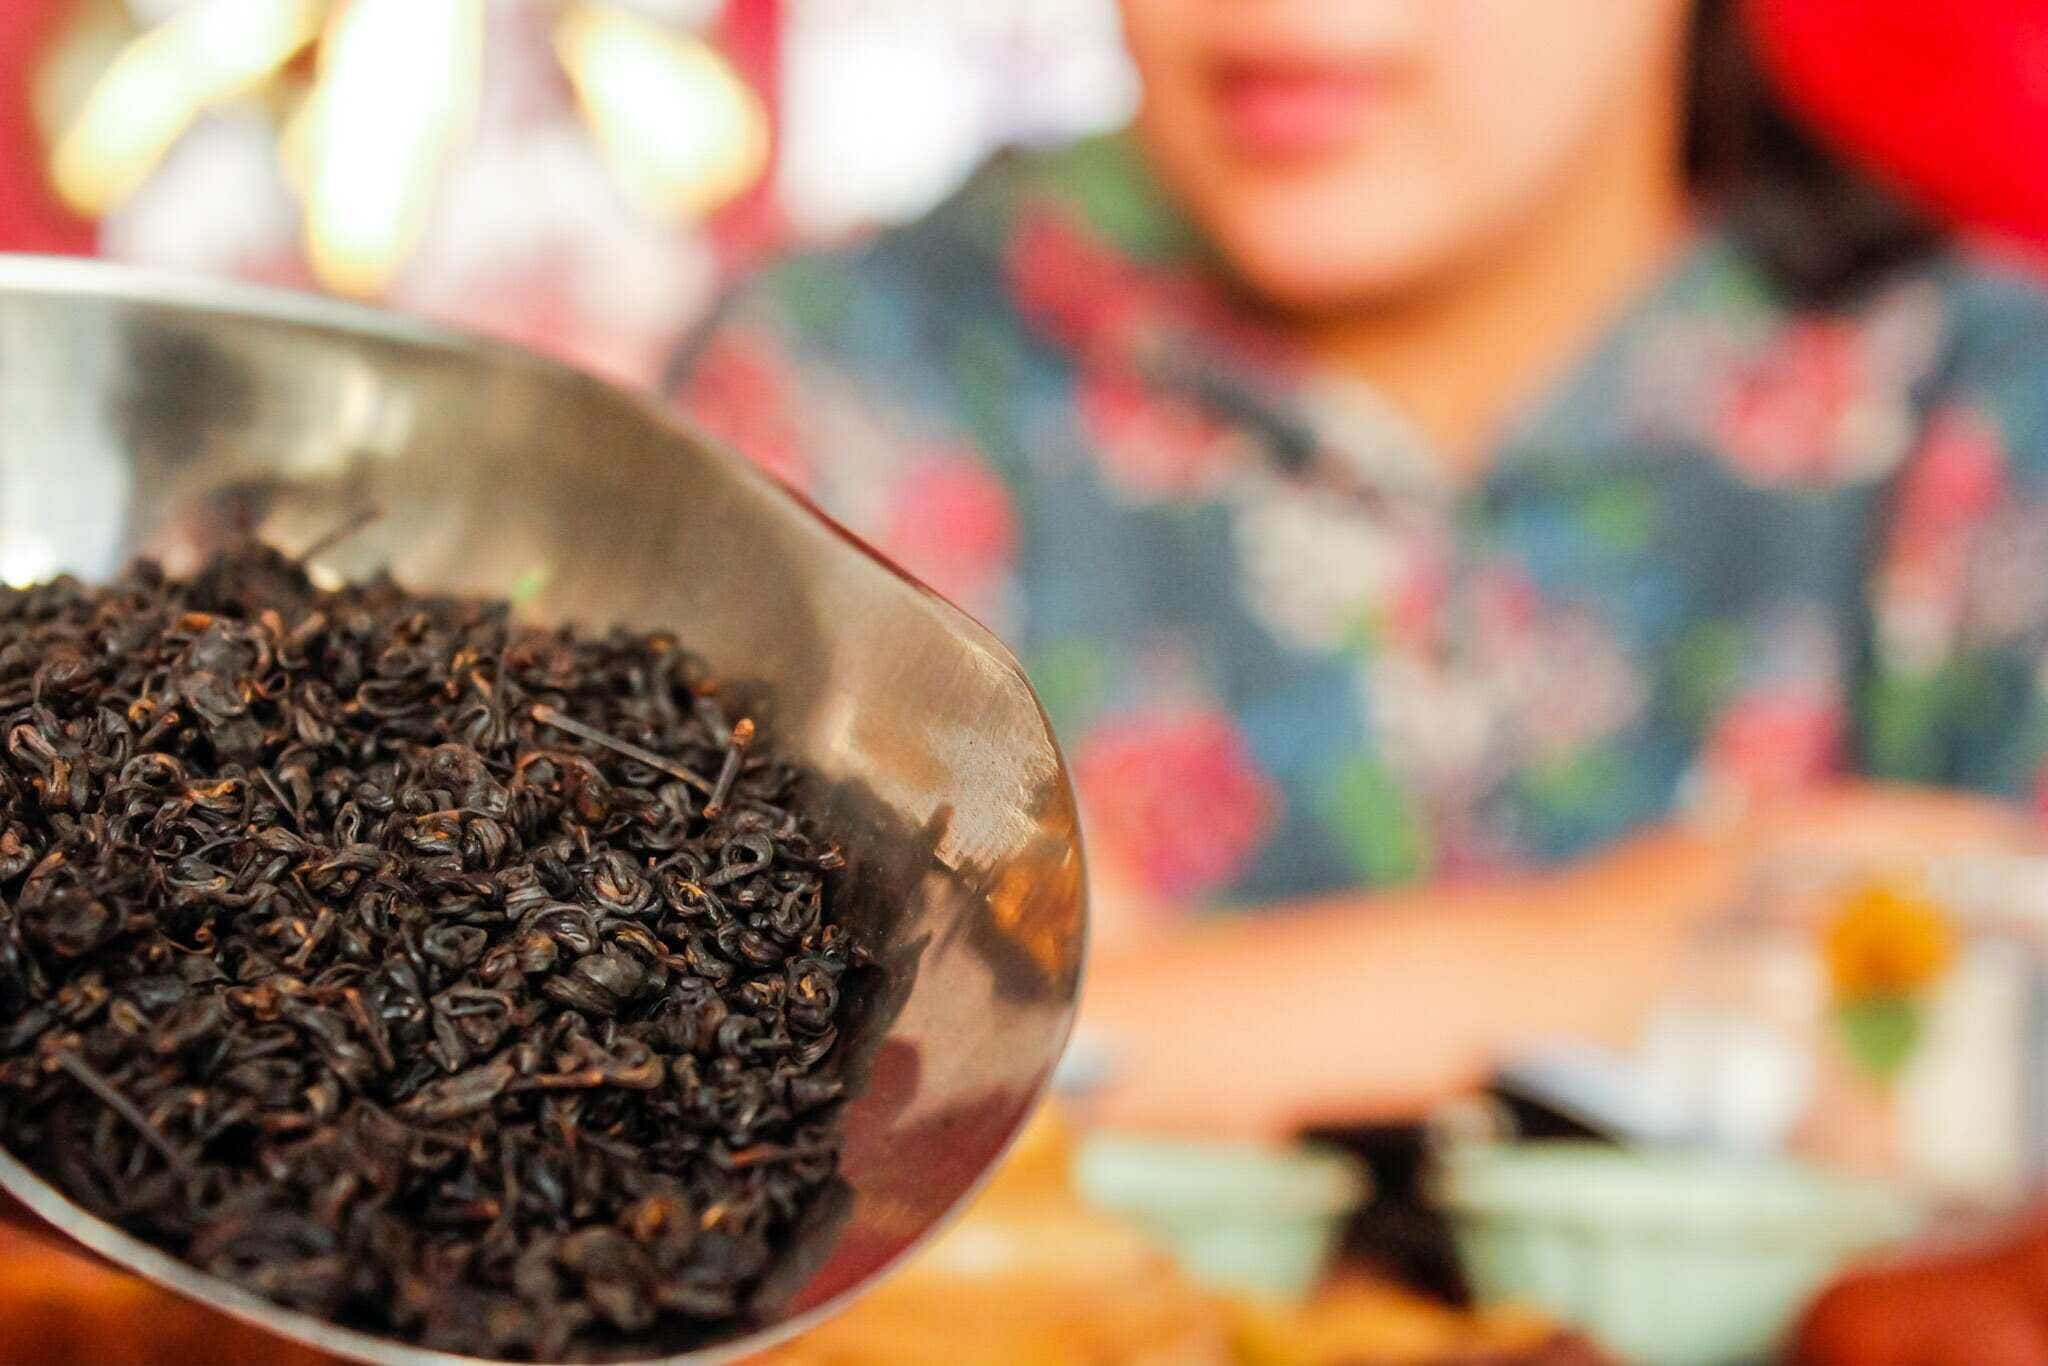 He Qingqing with her family's Laoshan Roasted Oolong